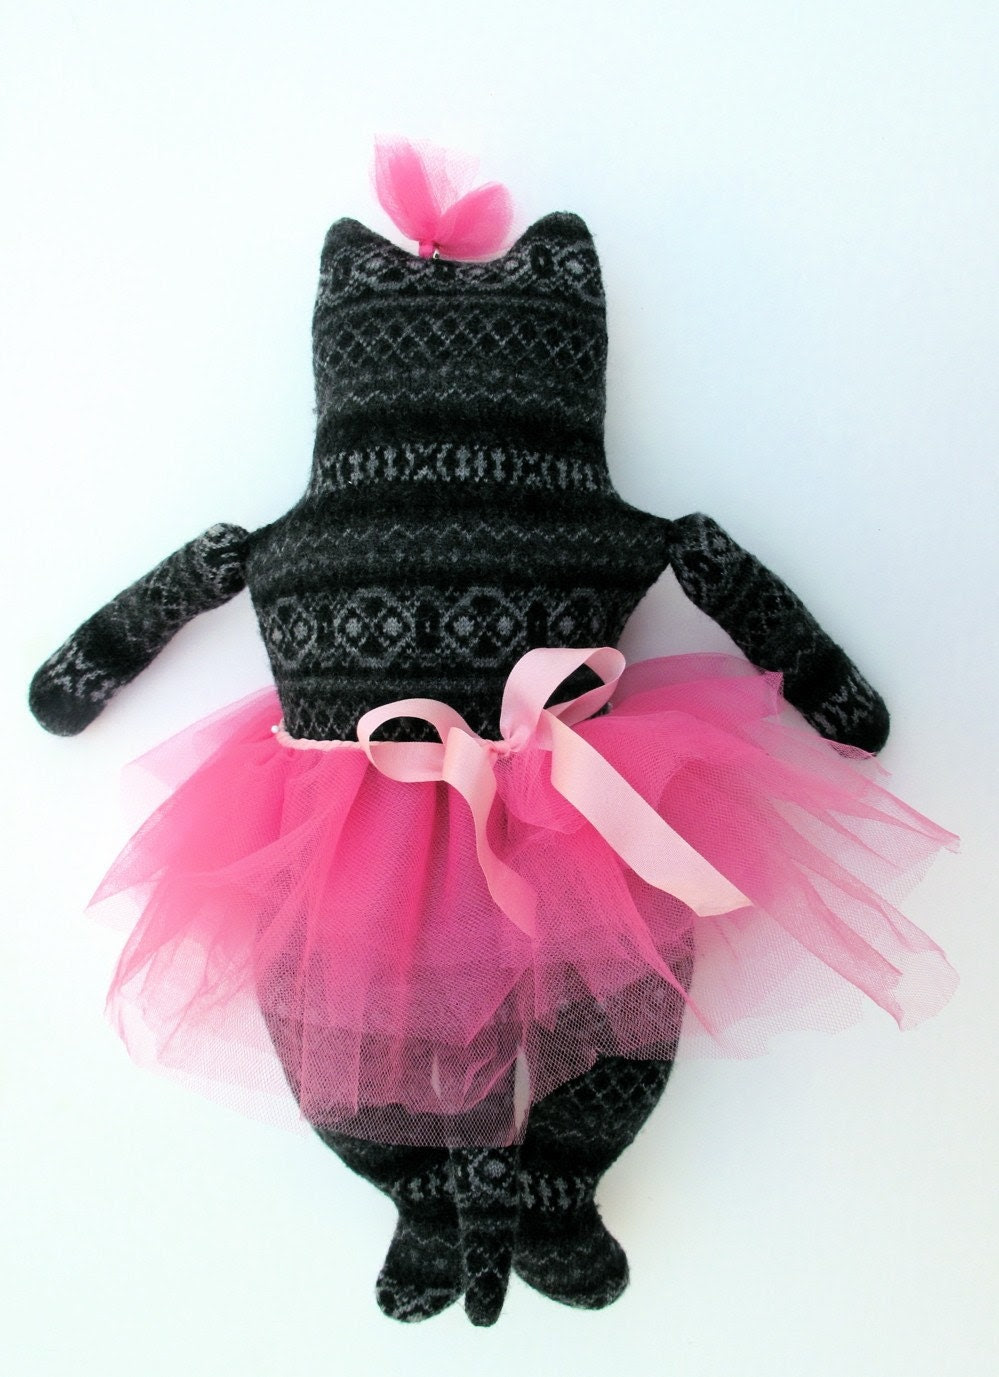 Kitty Ballerina doll